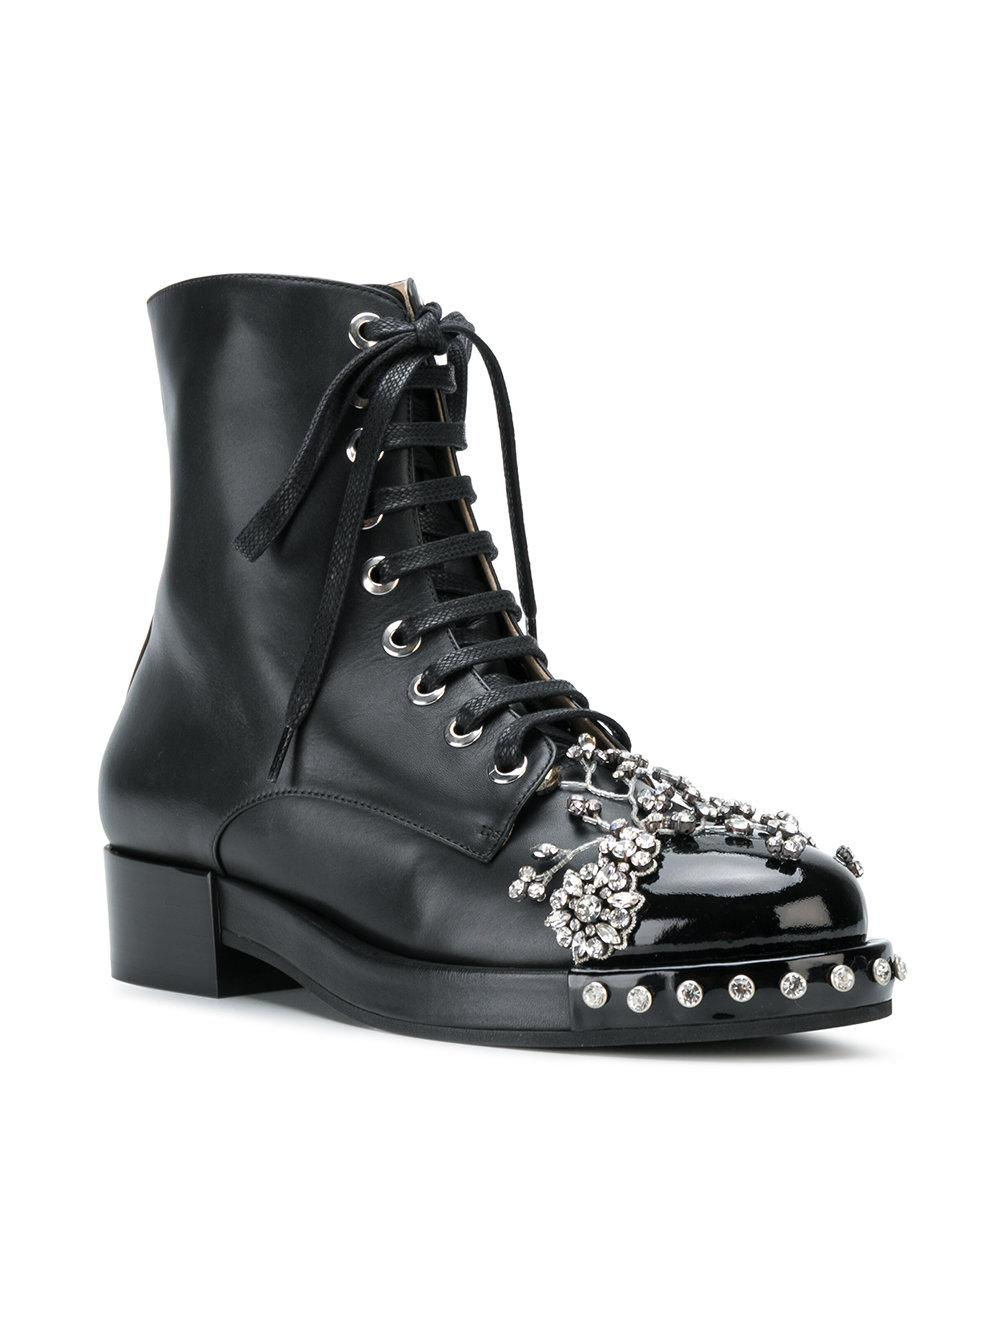 N°21 Woman Crystal-embellished Smooth And Patent-leather Ankle Boots Black